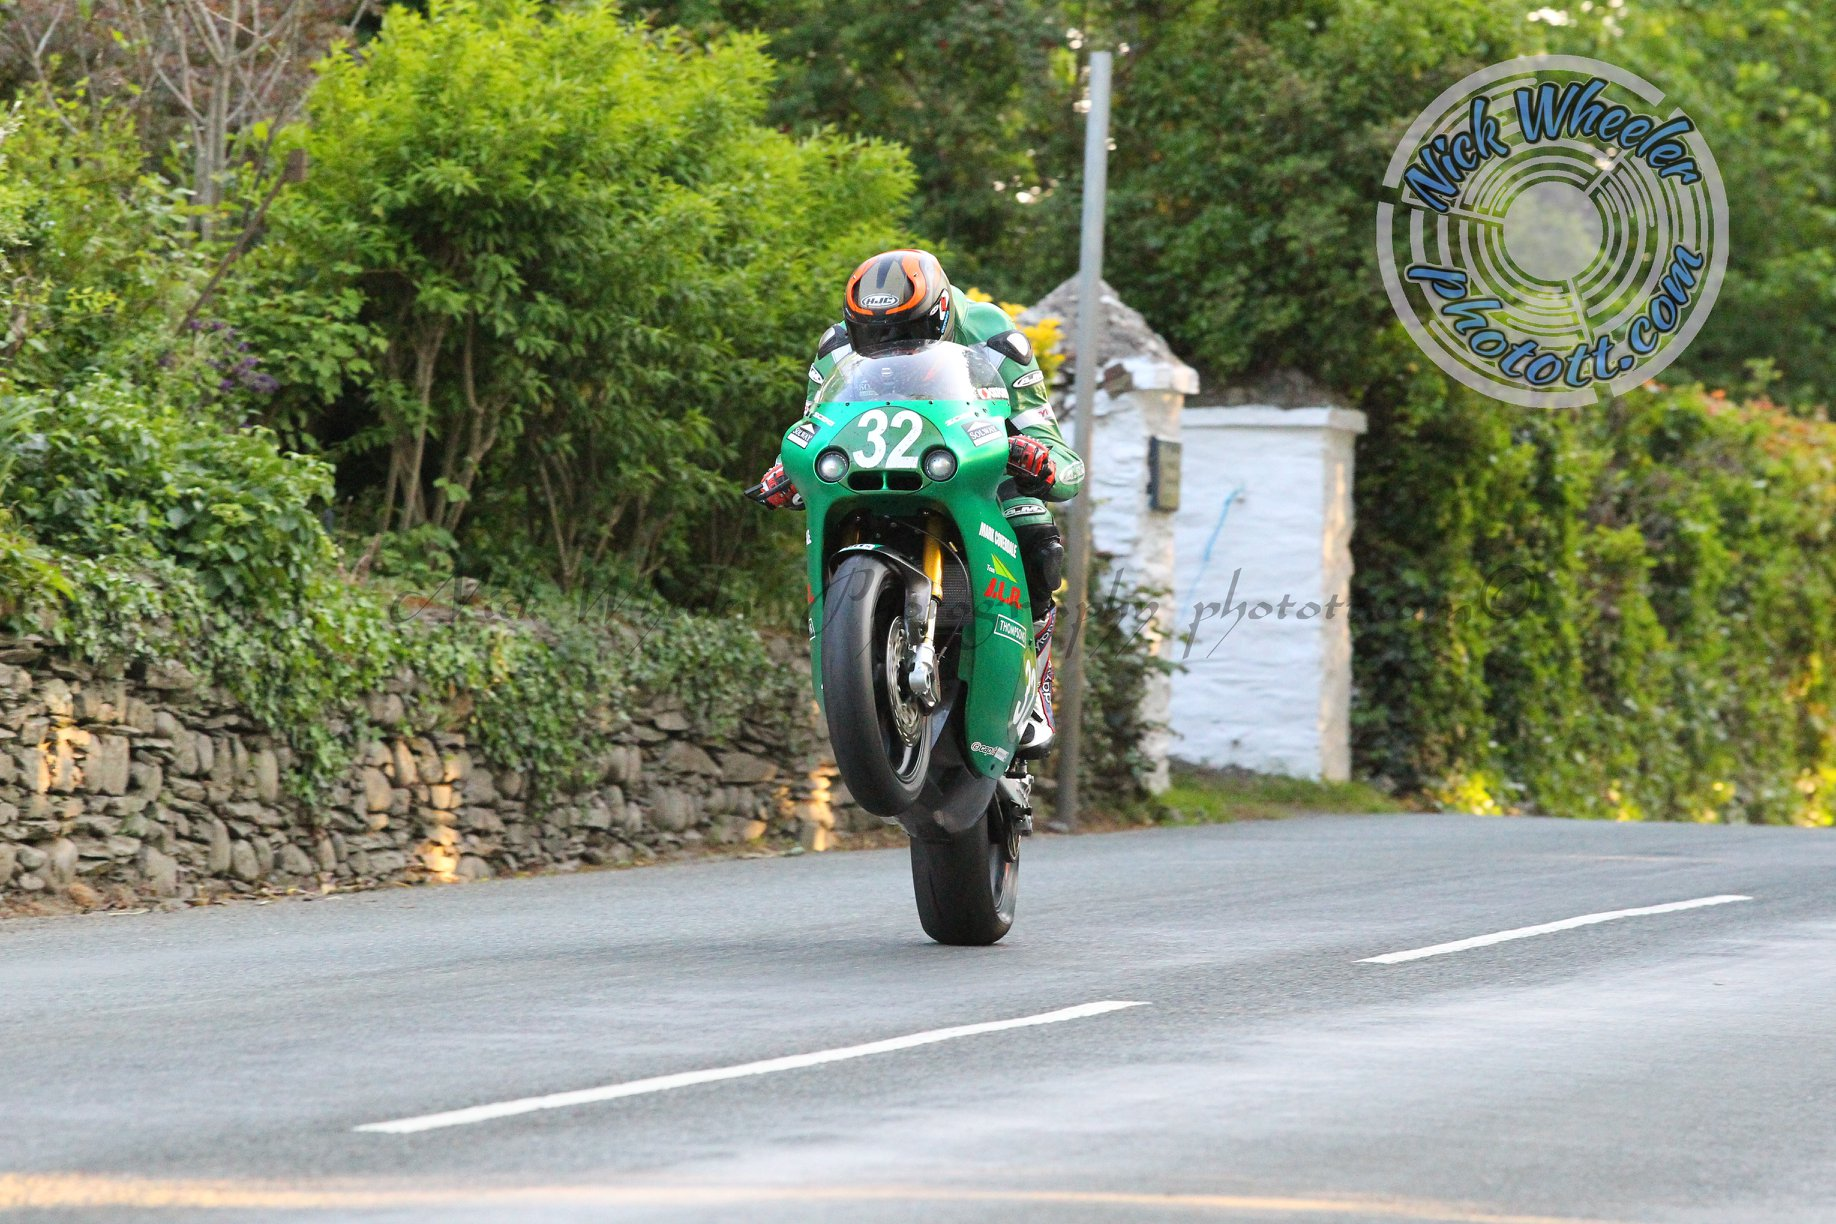 York's Thompson To Make Classic TT Bow With Oxford Products Ducati Team